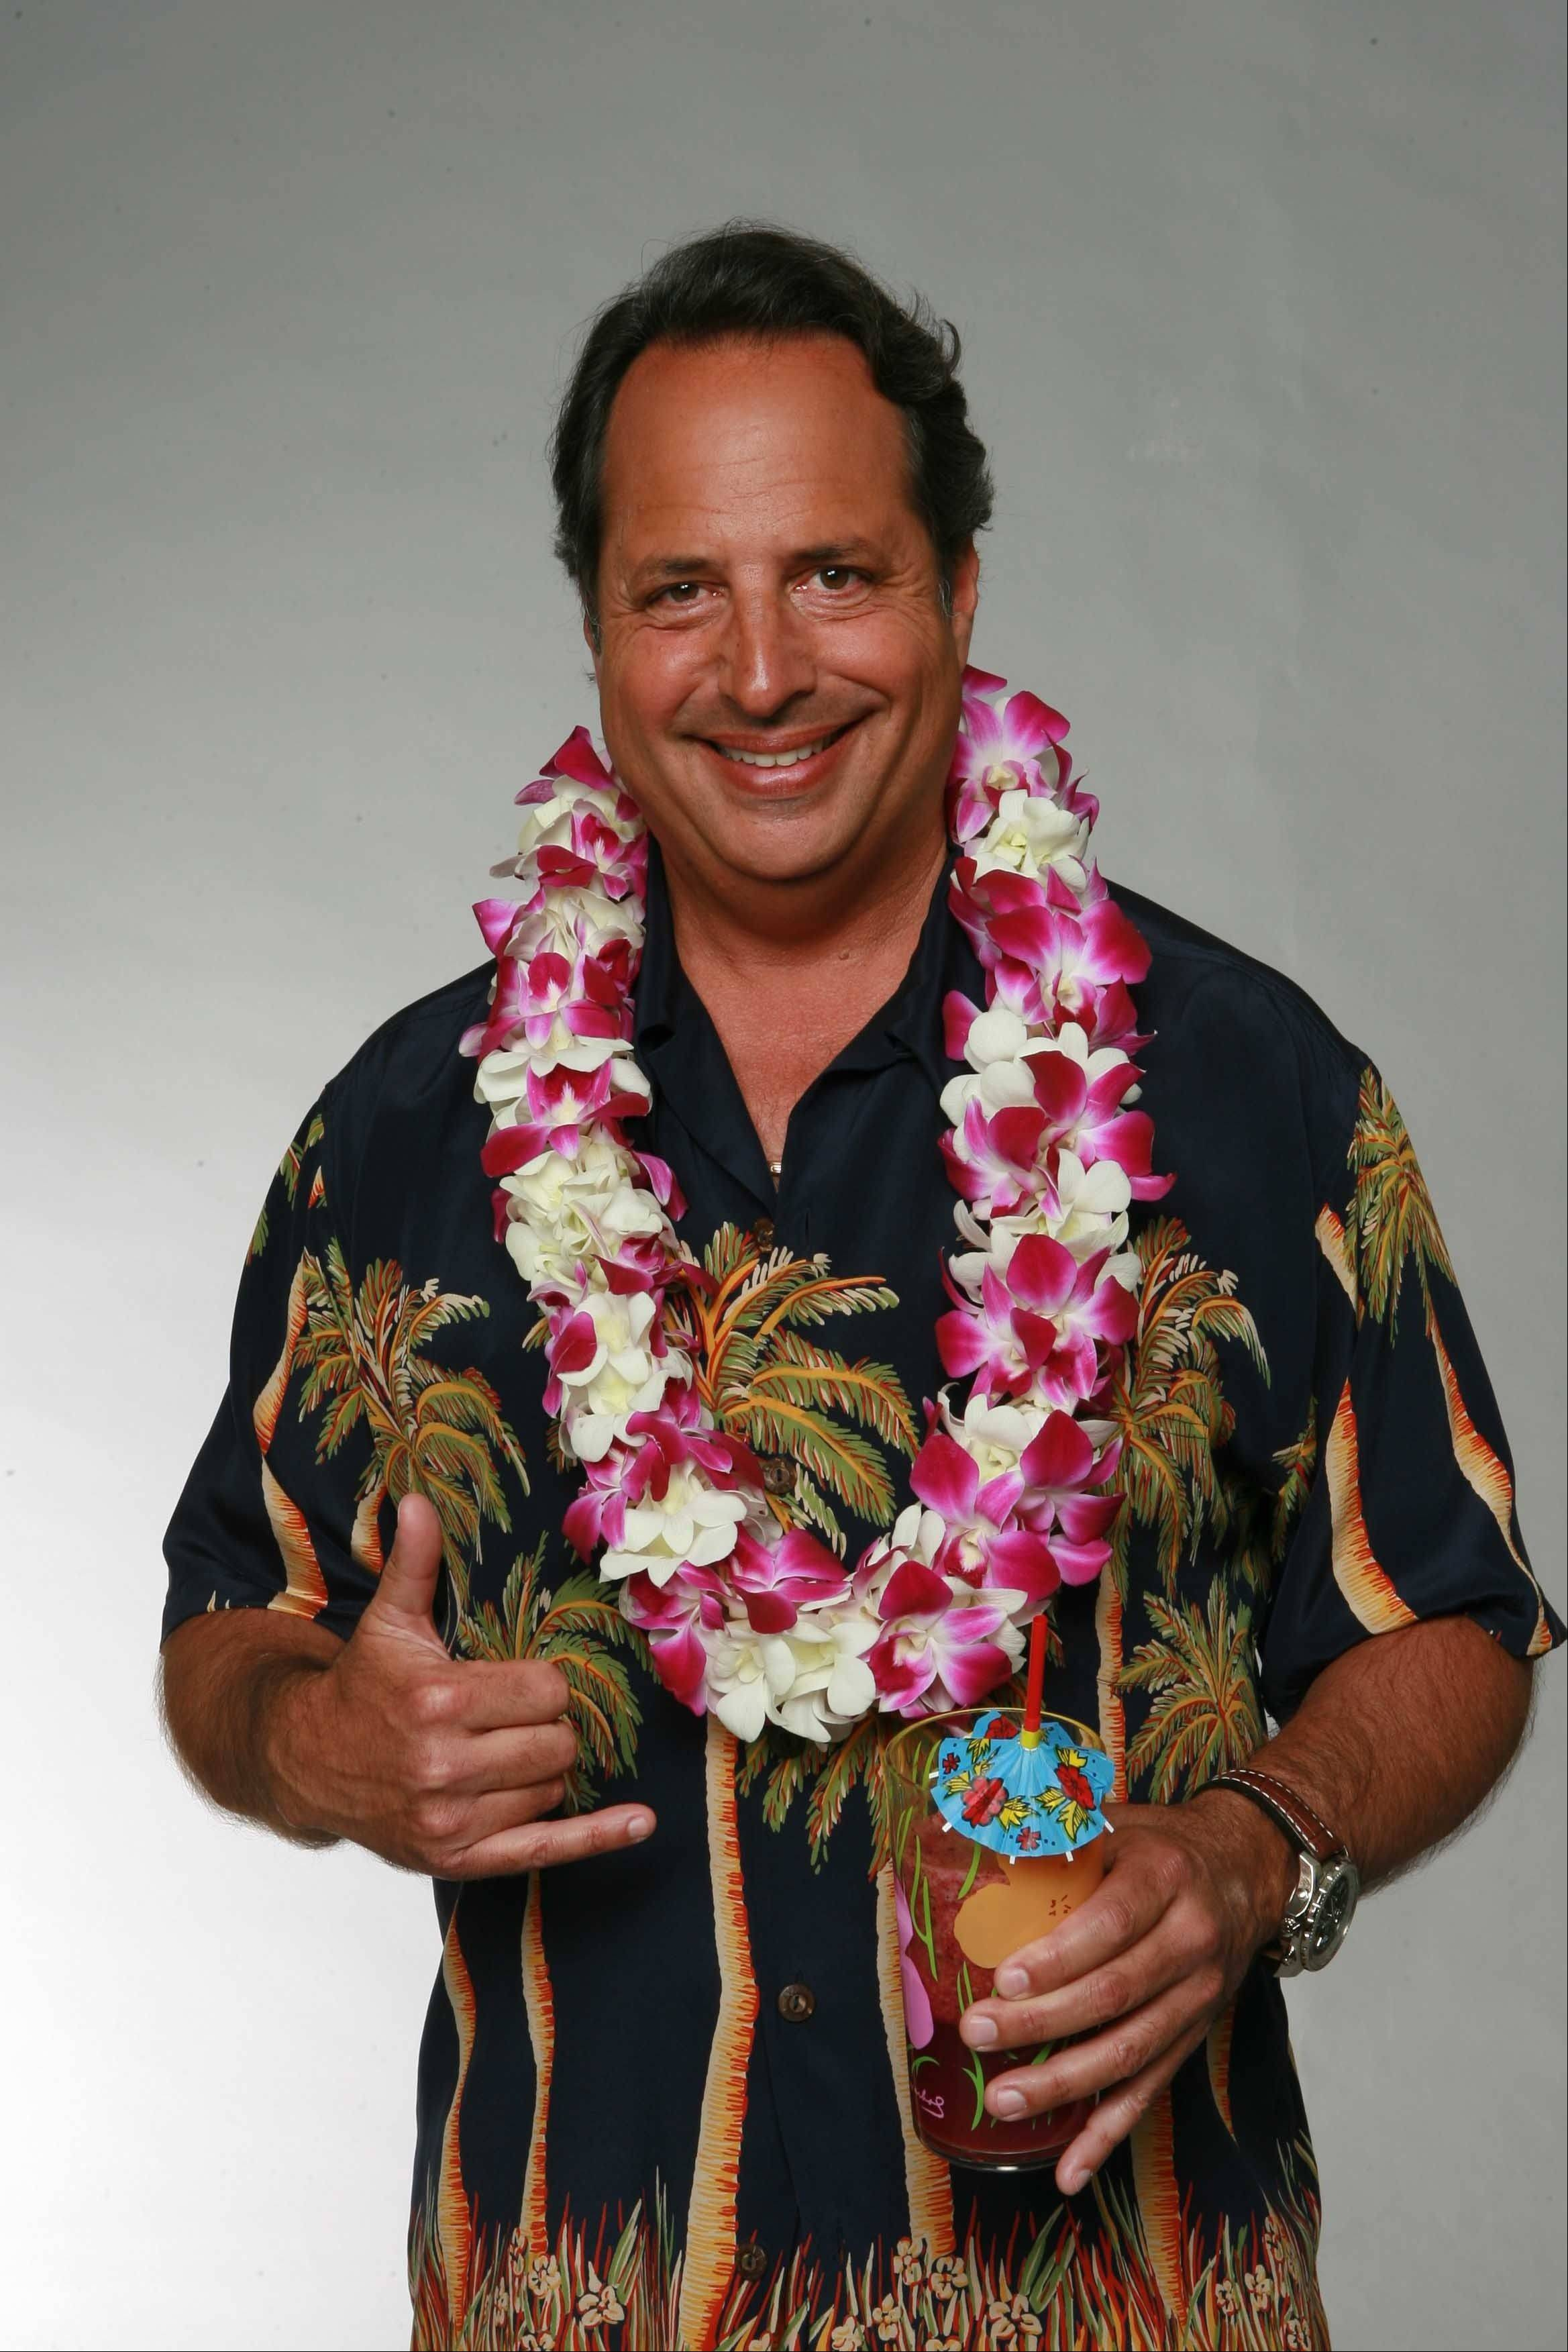 Comedian Jon Lovitz performs Sunday at the Improv Comedy Showcase in Schaumburg.